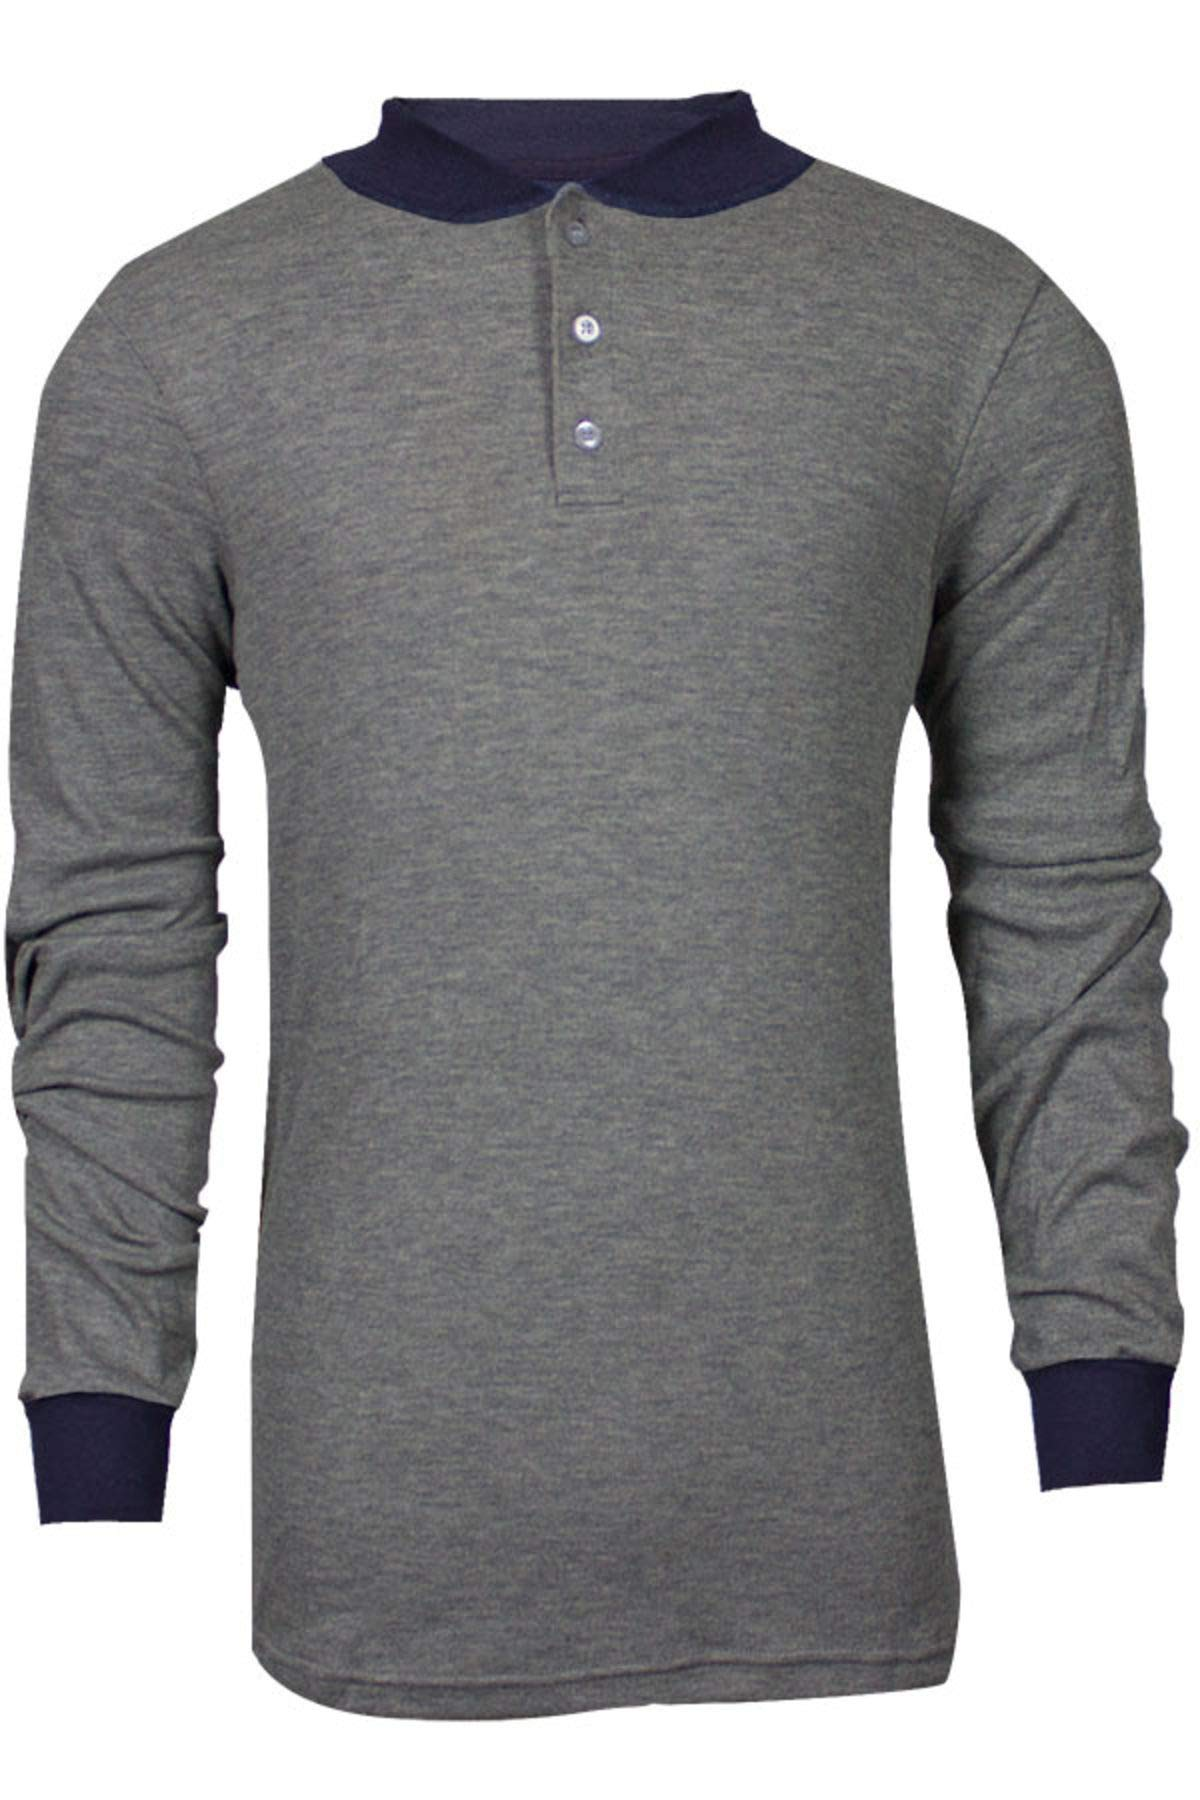 National Safety Apparel C541NGEBSLSMD TECGEN Select Long Sleeve FR Henley, Medium, Grey by National Safety Apparel Inc (Image #1)